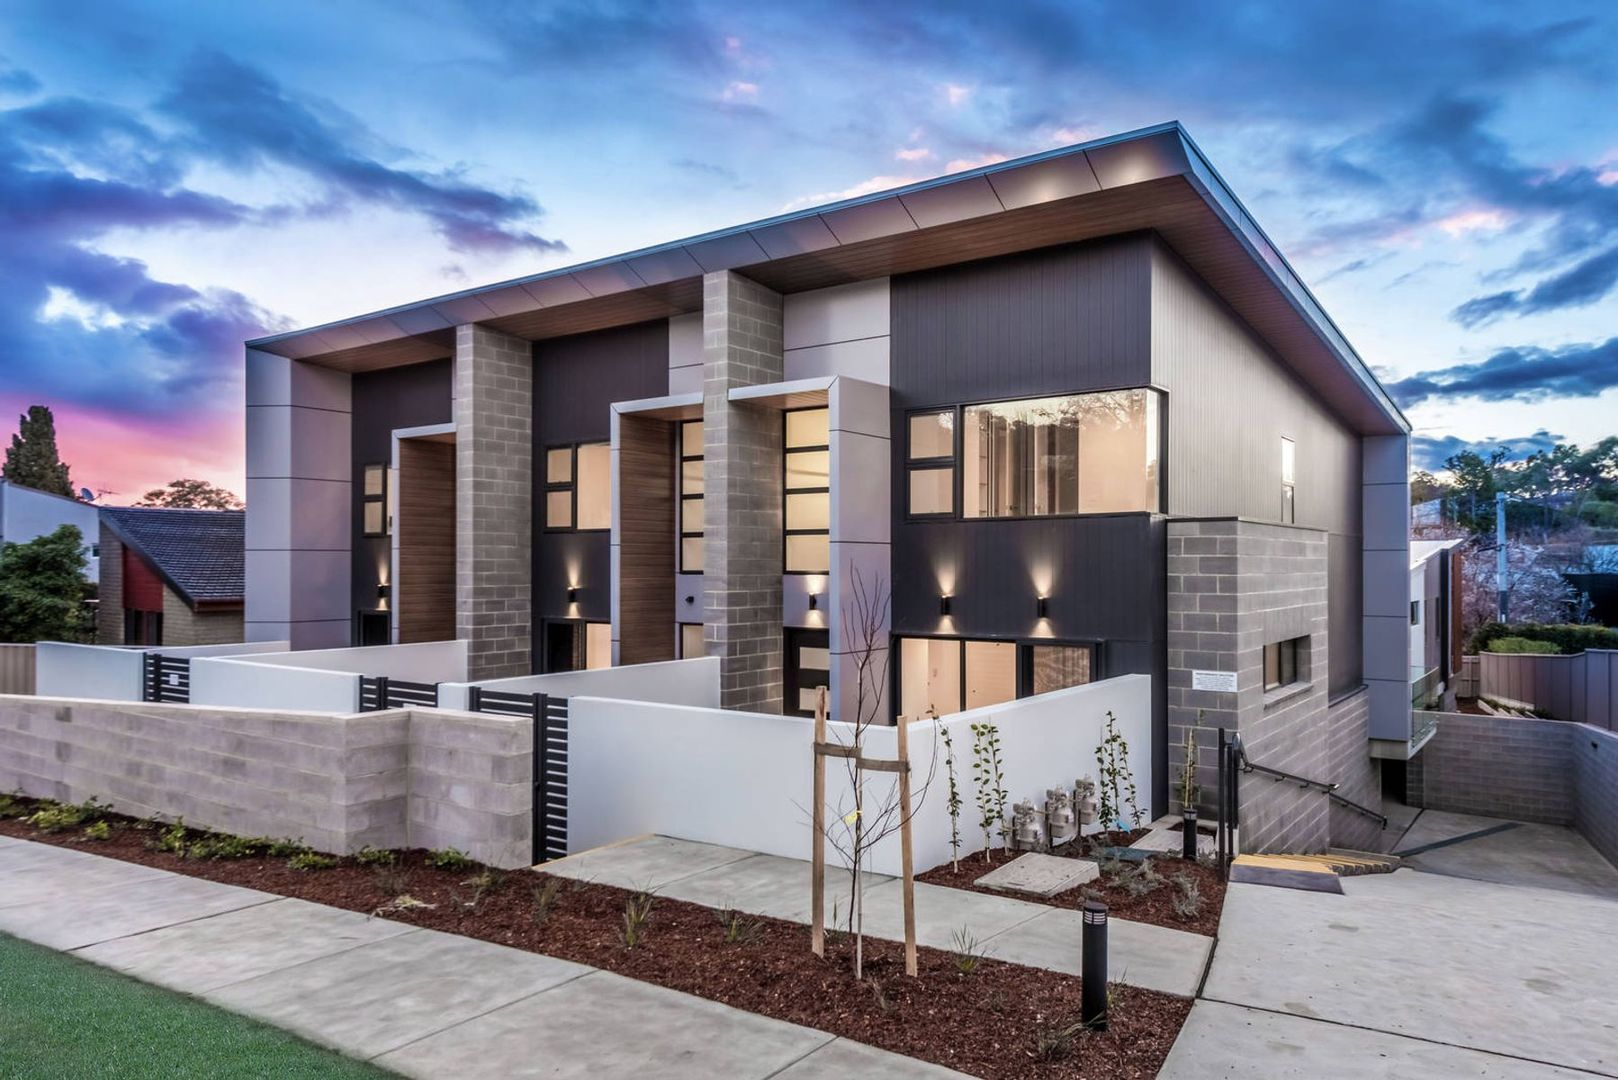 3/130 Blamey Crescent, Campbell ACT 2612, Image 1